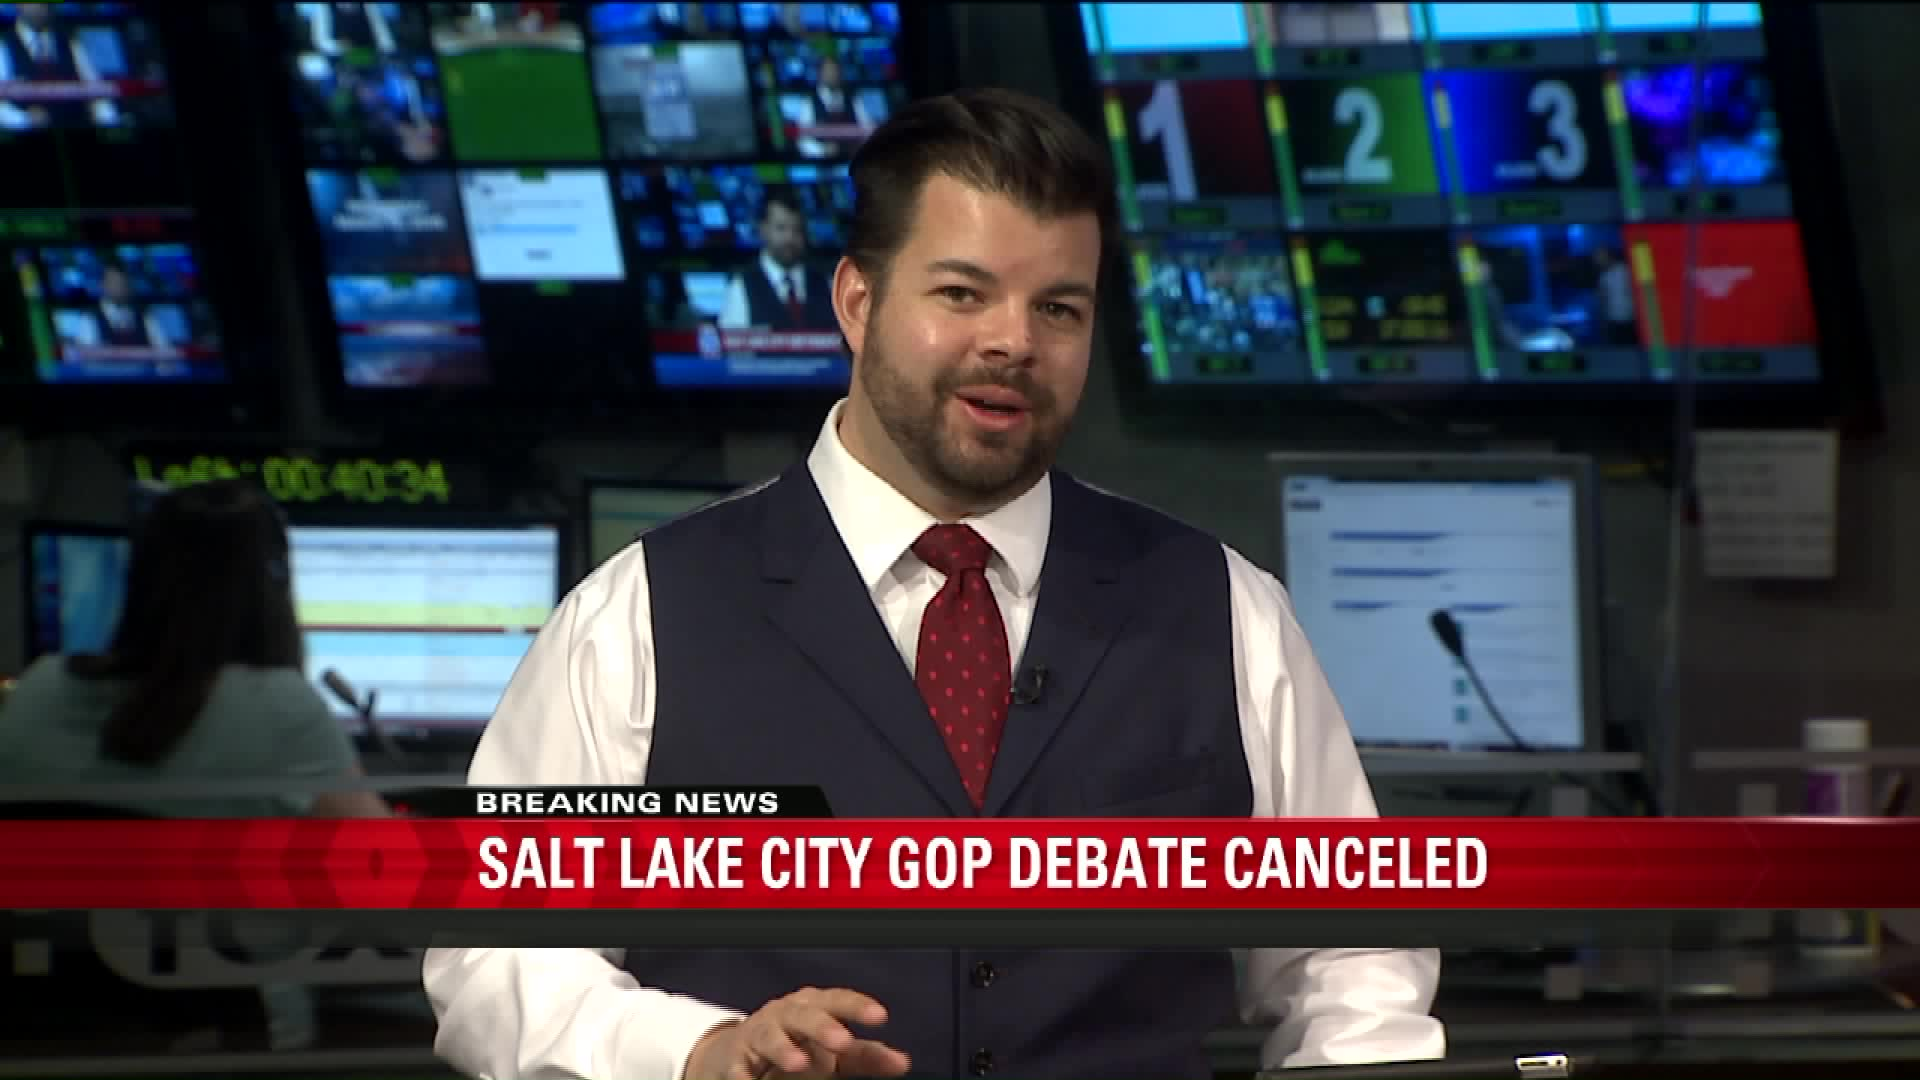 FOX News Cancels GOP Debate In Salt Lake City